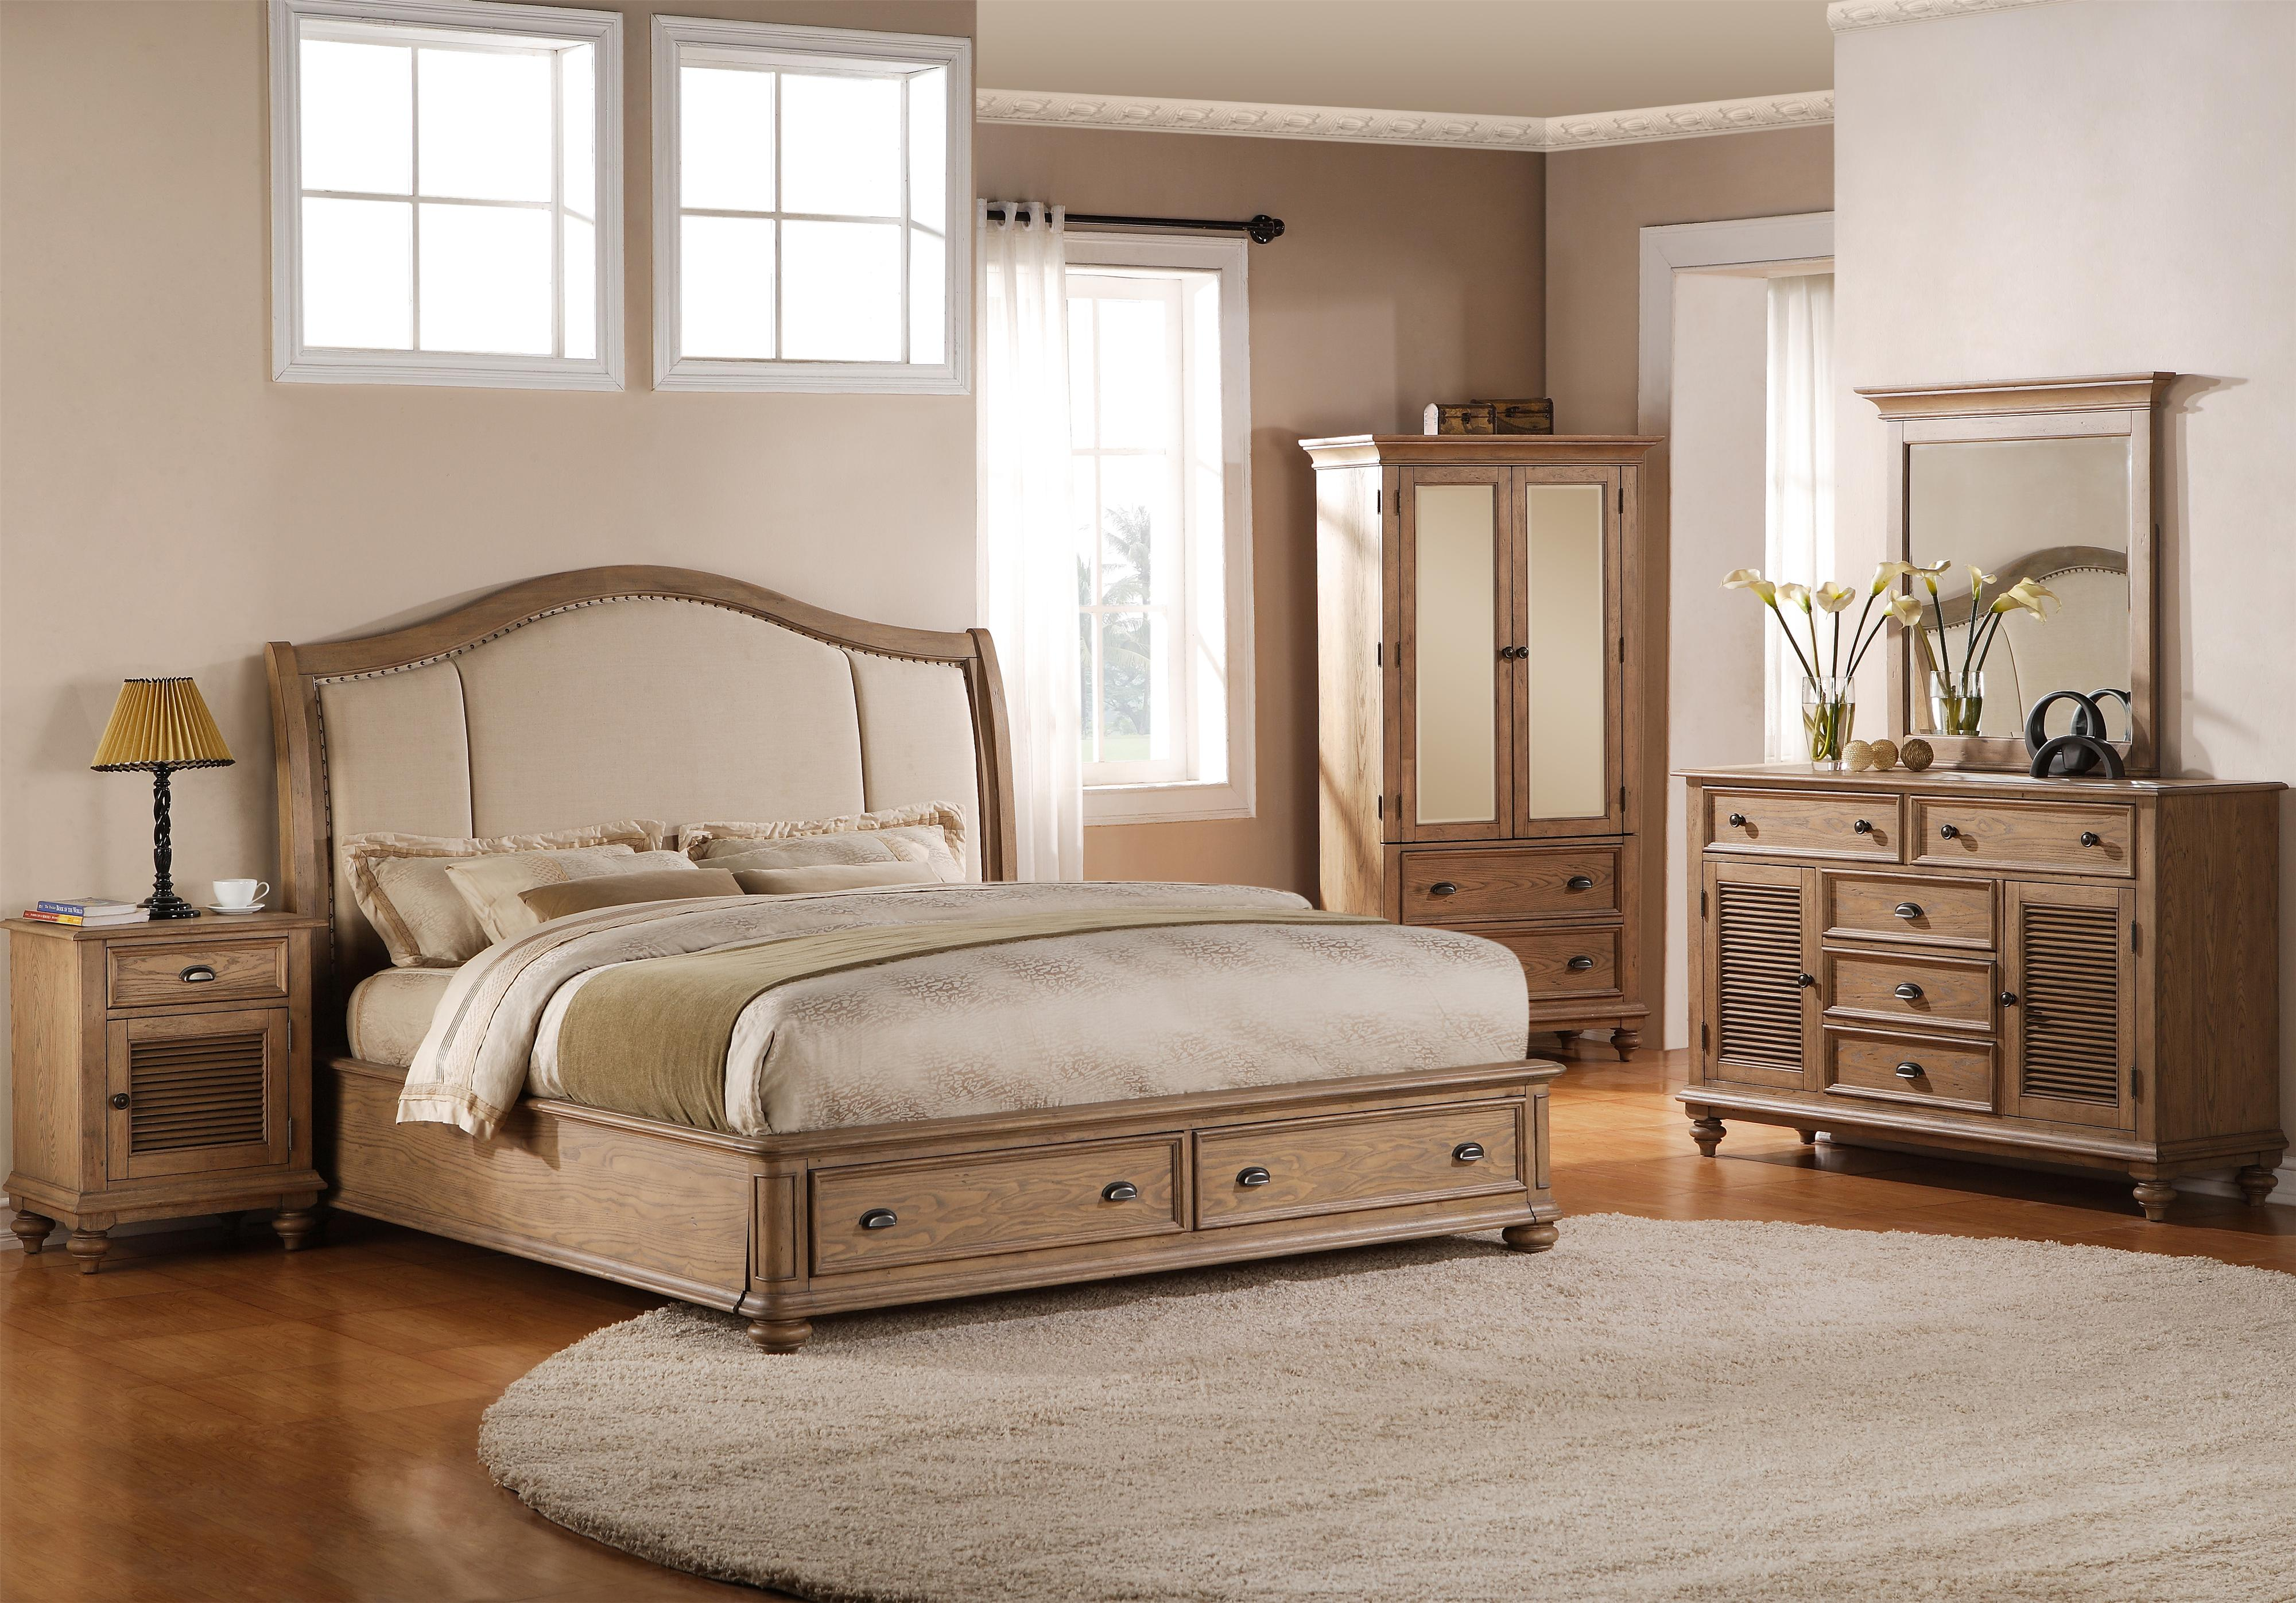 Riverside Furniture Coventry Full/Queen Bedroom Group - Item Number: 32400 F Q Bedroom Group 11